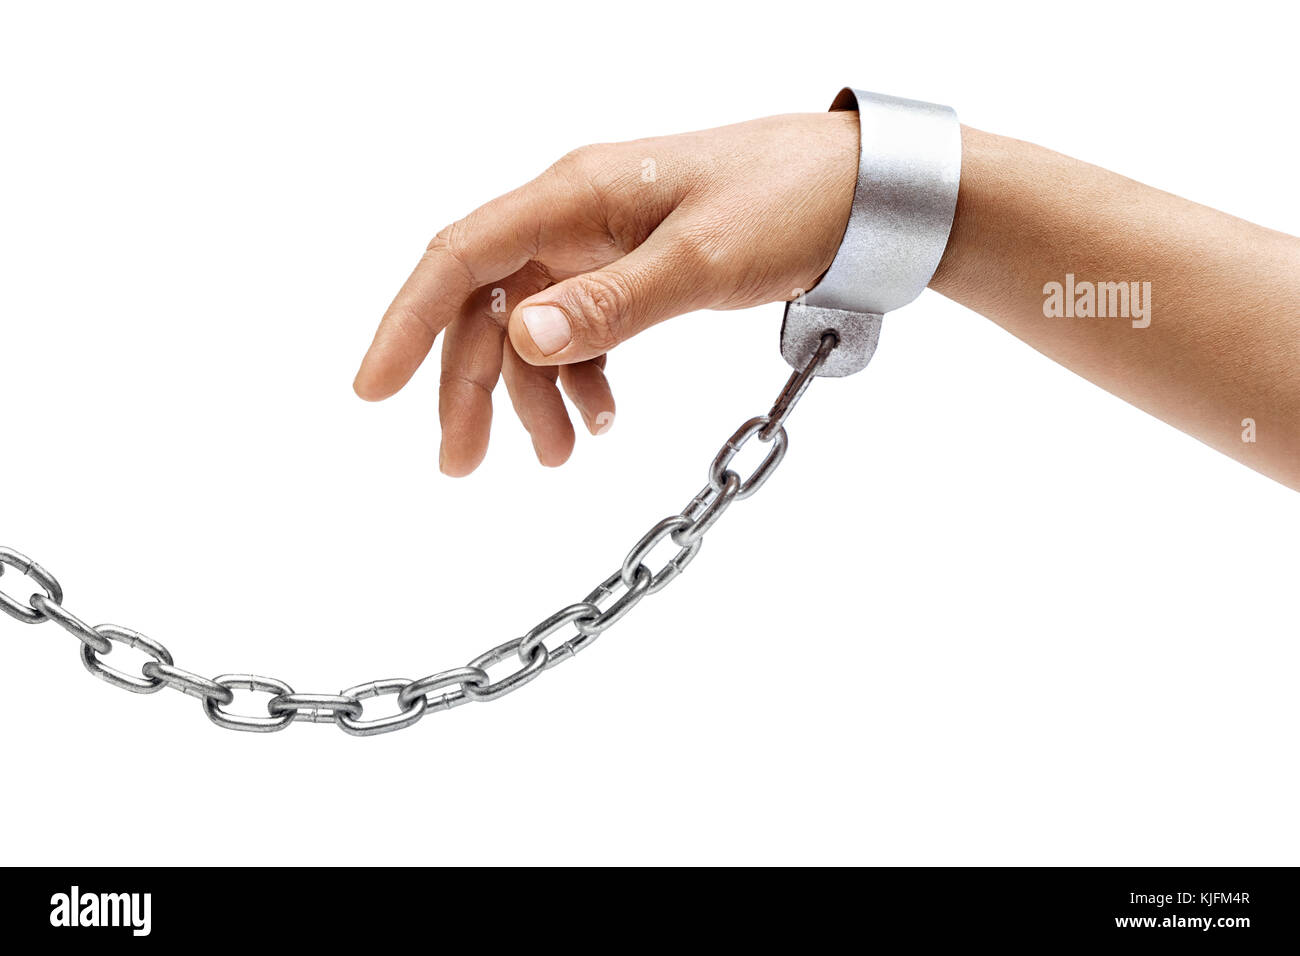 Man's hand in chains isolated on white background. Close up, concept against violence - Stock Image